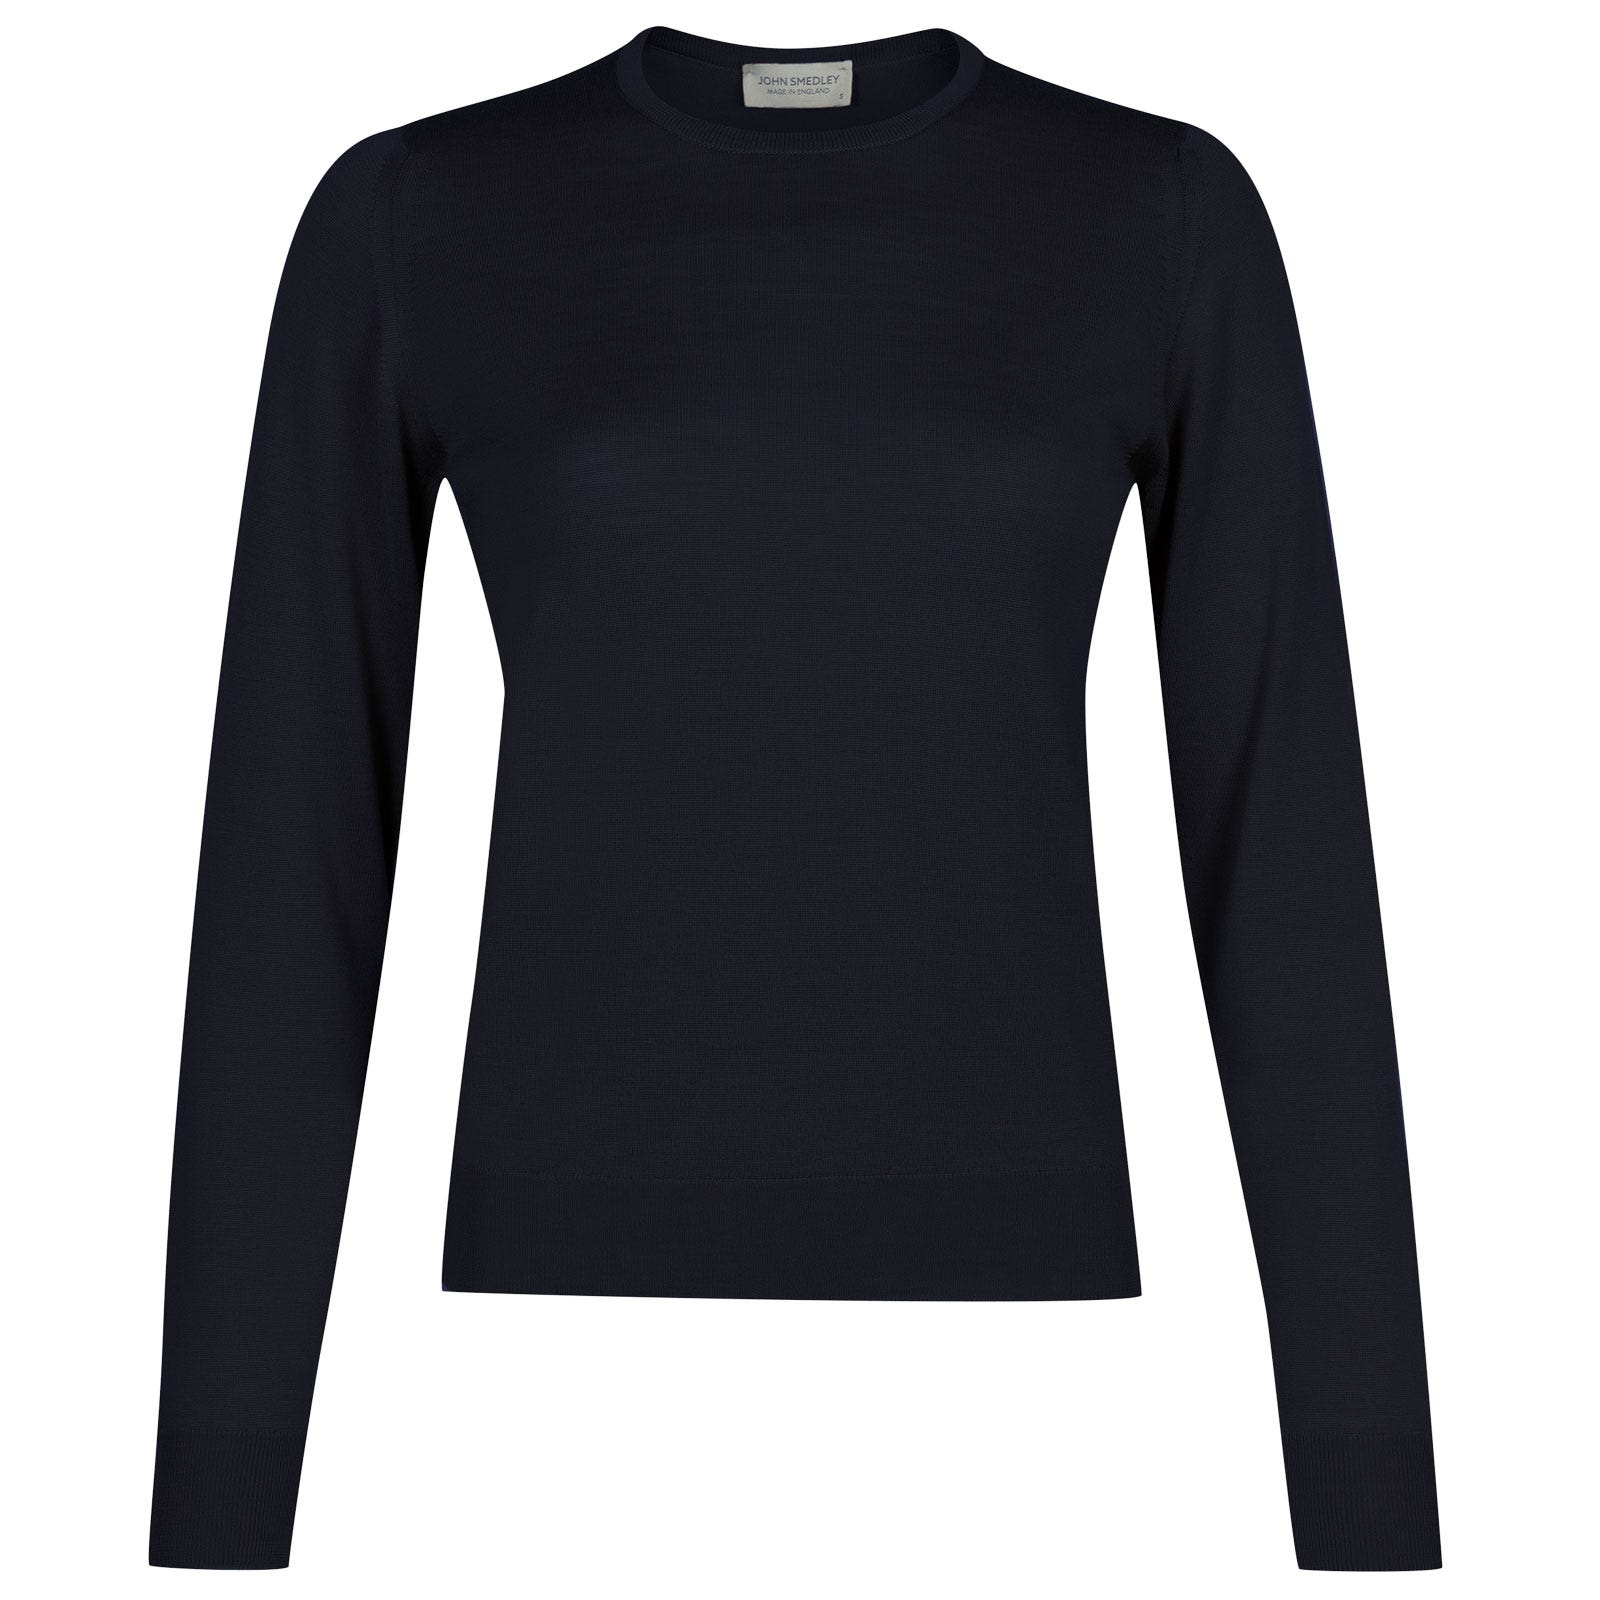 John Smedley venice Merino Wool Sweater in Midnight-S